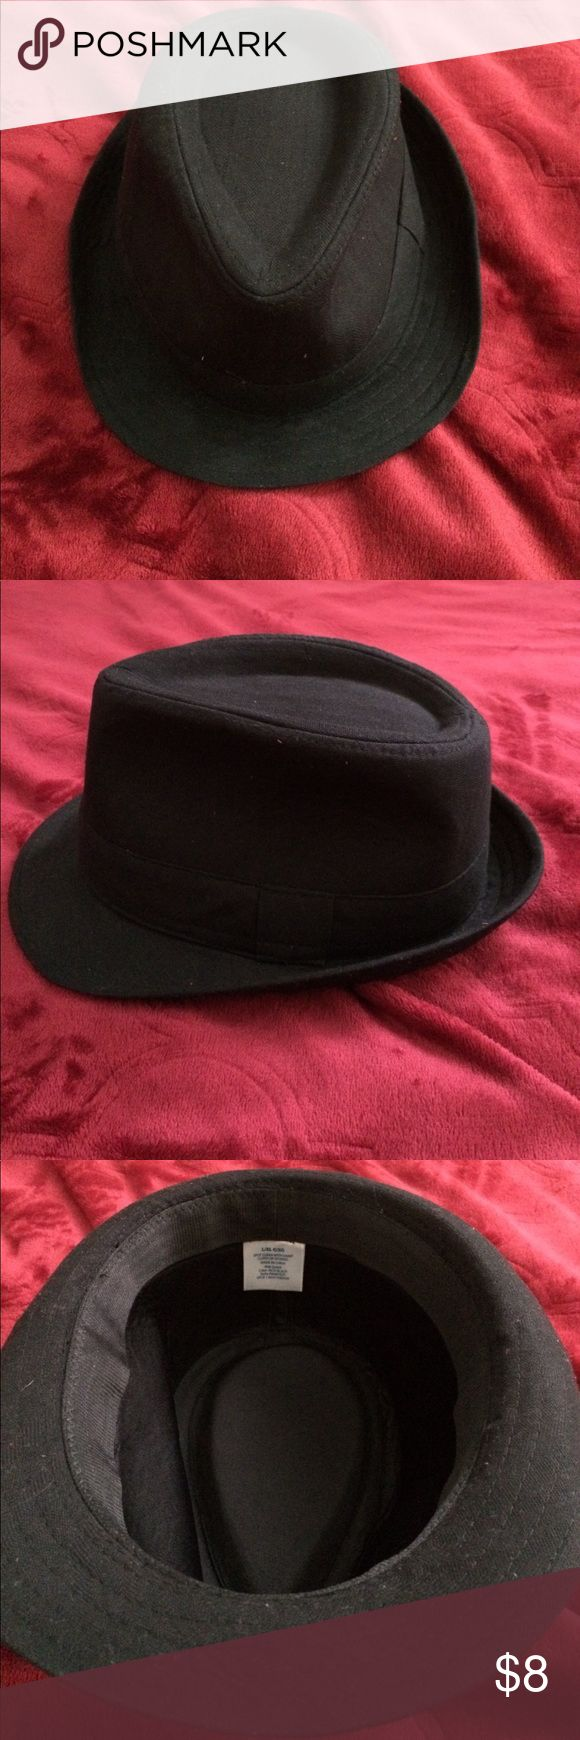 Fedora For Men Black fedora - size L. Boyfriend wore it once for winter formal and didn't really like it. Price is firm. No trades. Accessories Hats